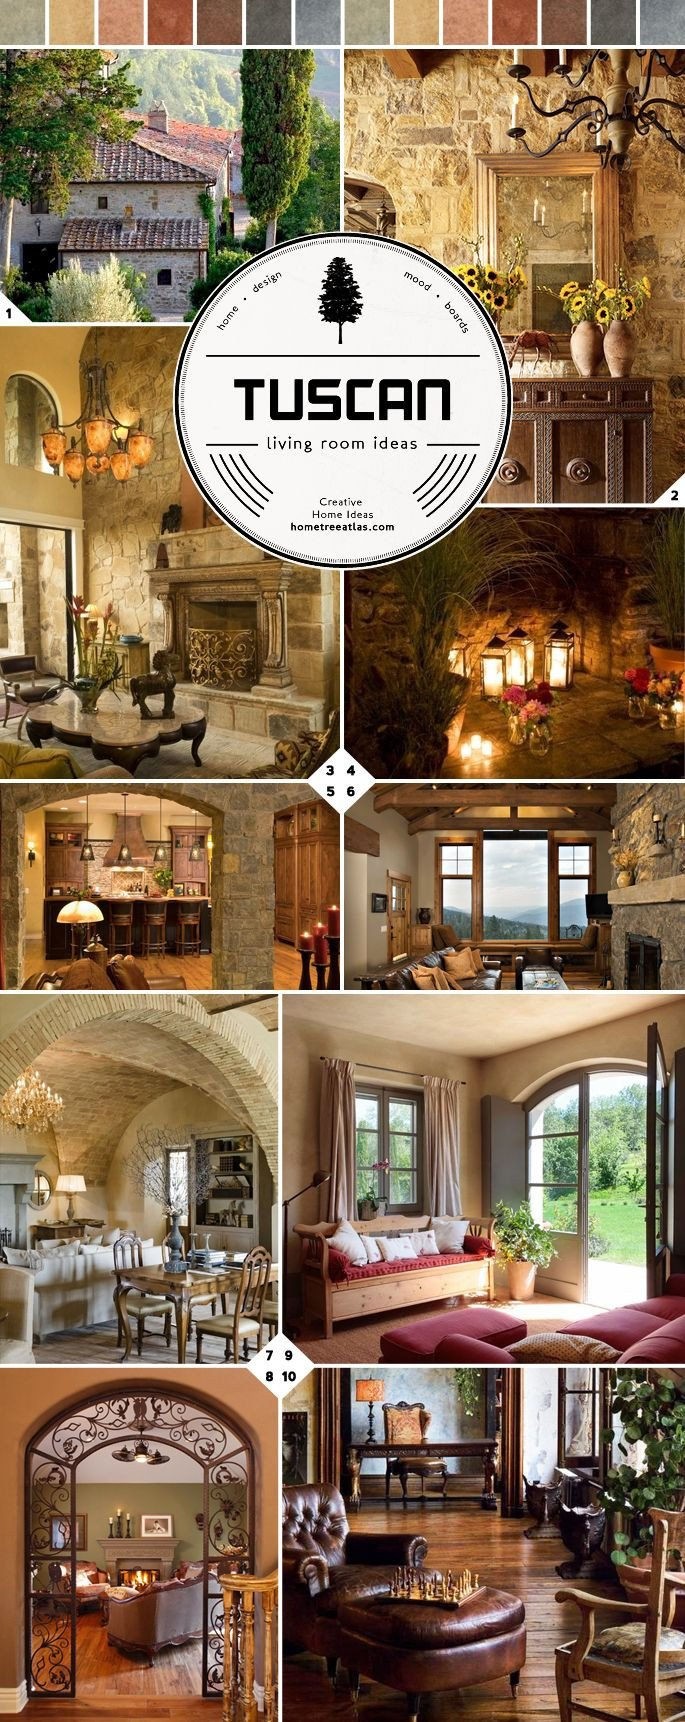 Italian Living Room Decorating Ideas From Italy Tuscan Living Room Ideas